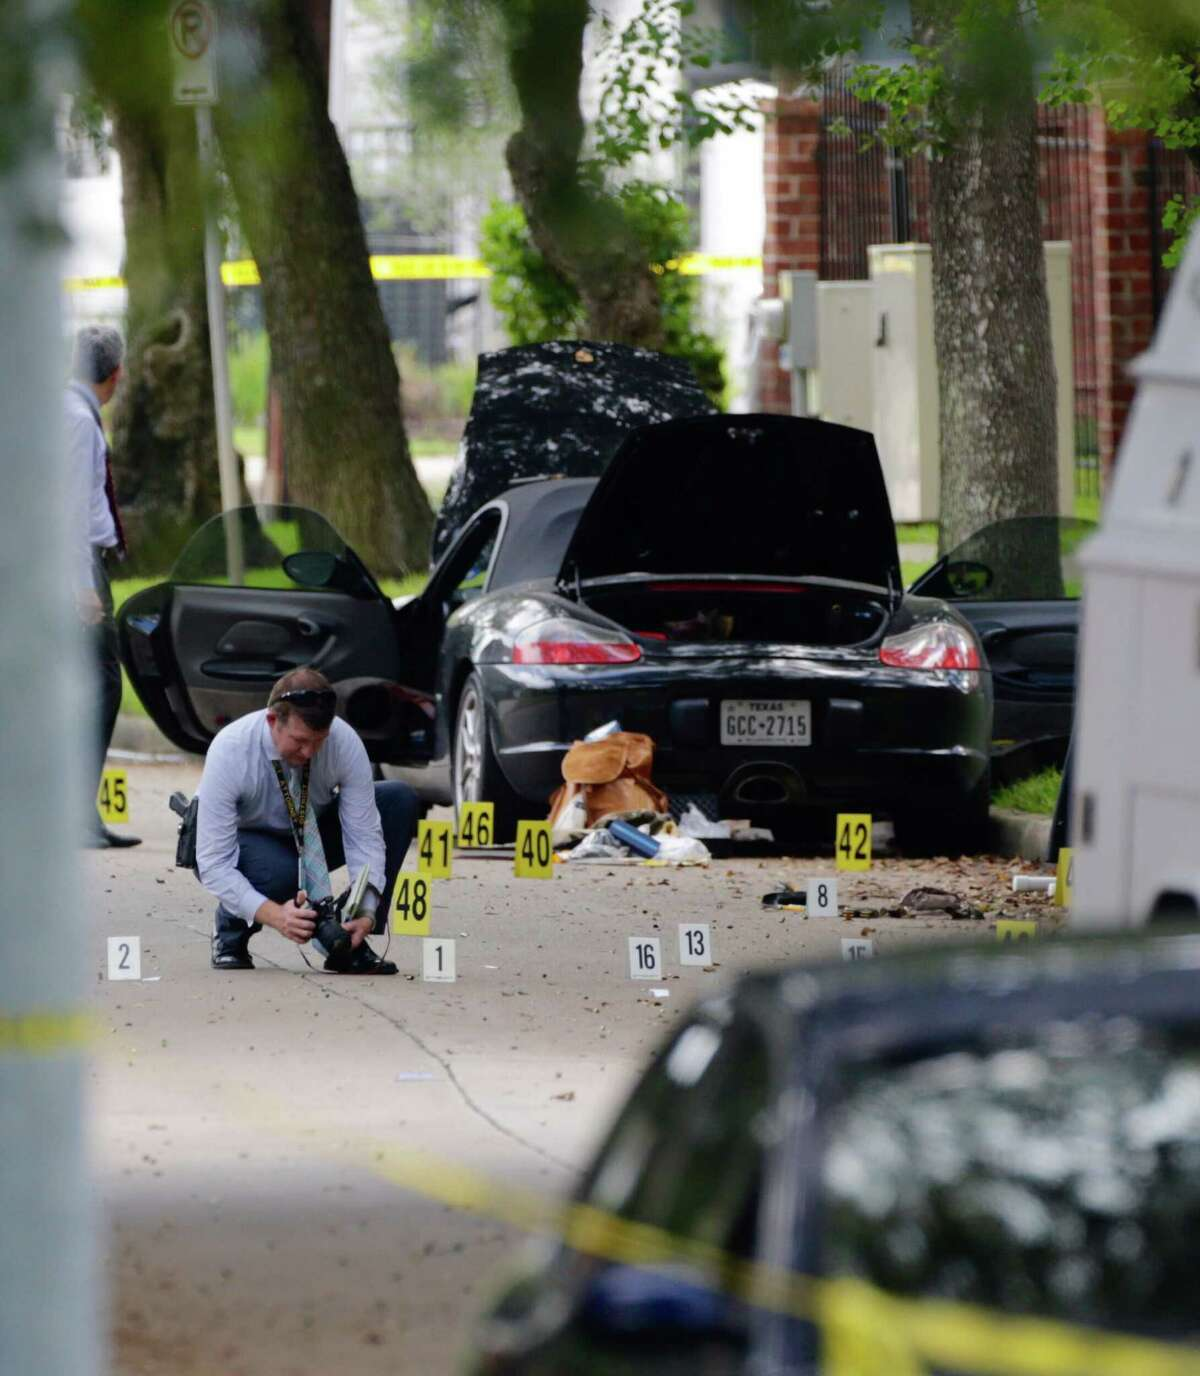 Police investigate the suspect's car in Monday morning's shooting along Law Street at Weslayan, Sept. 26, 2016.